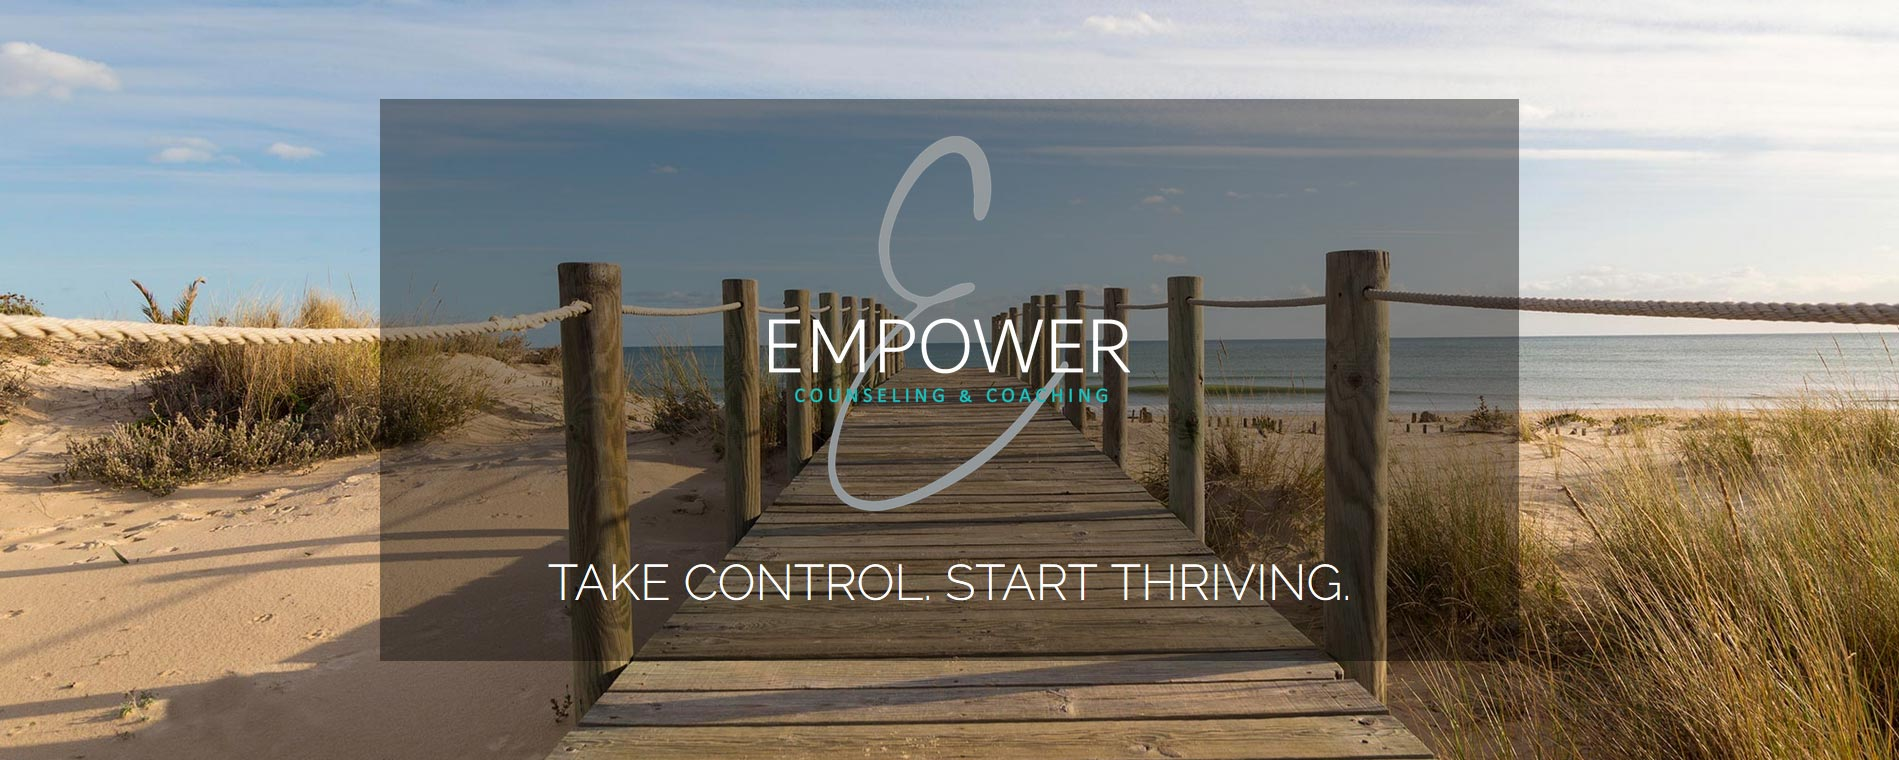 Empower Counseling